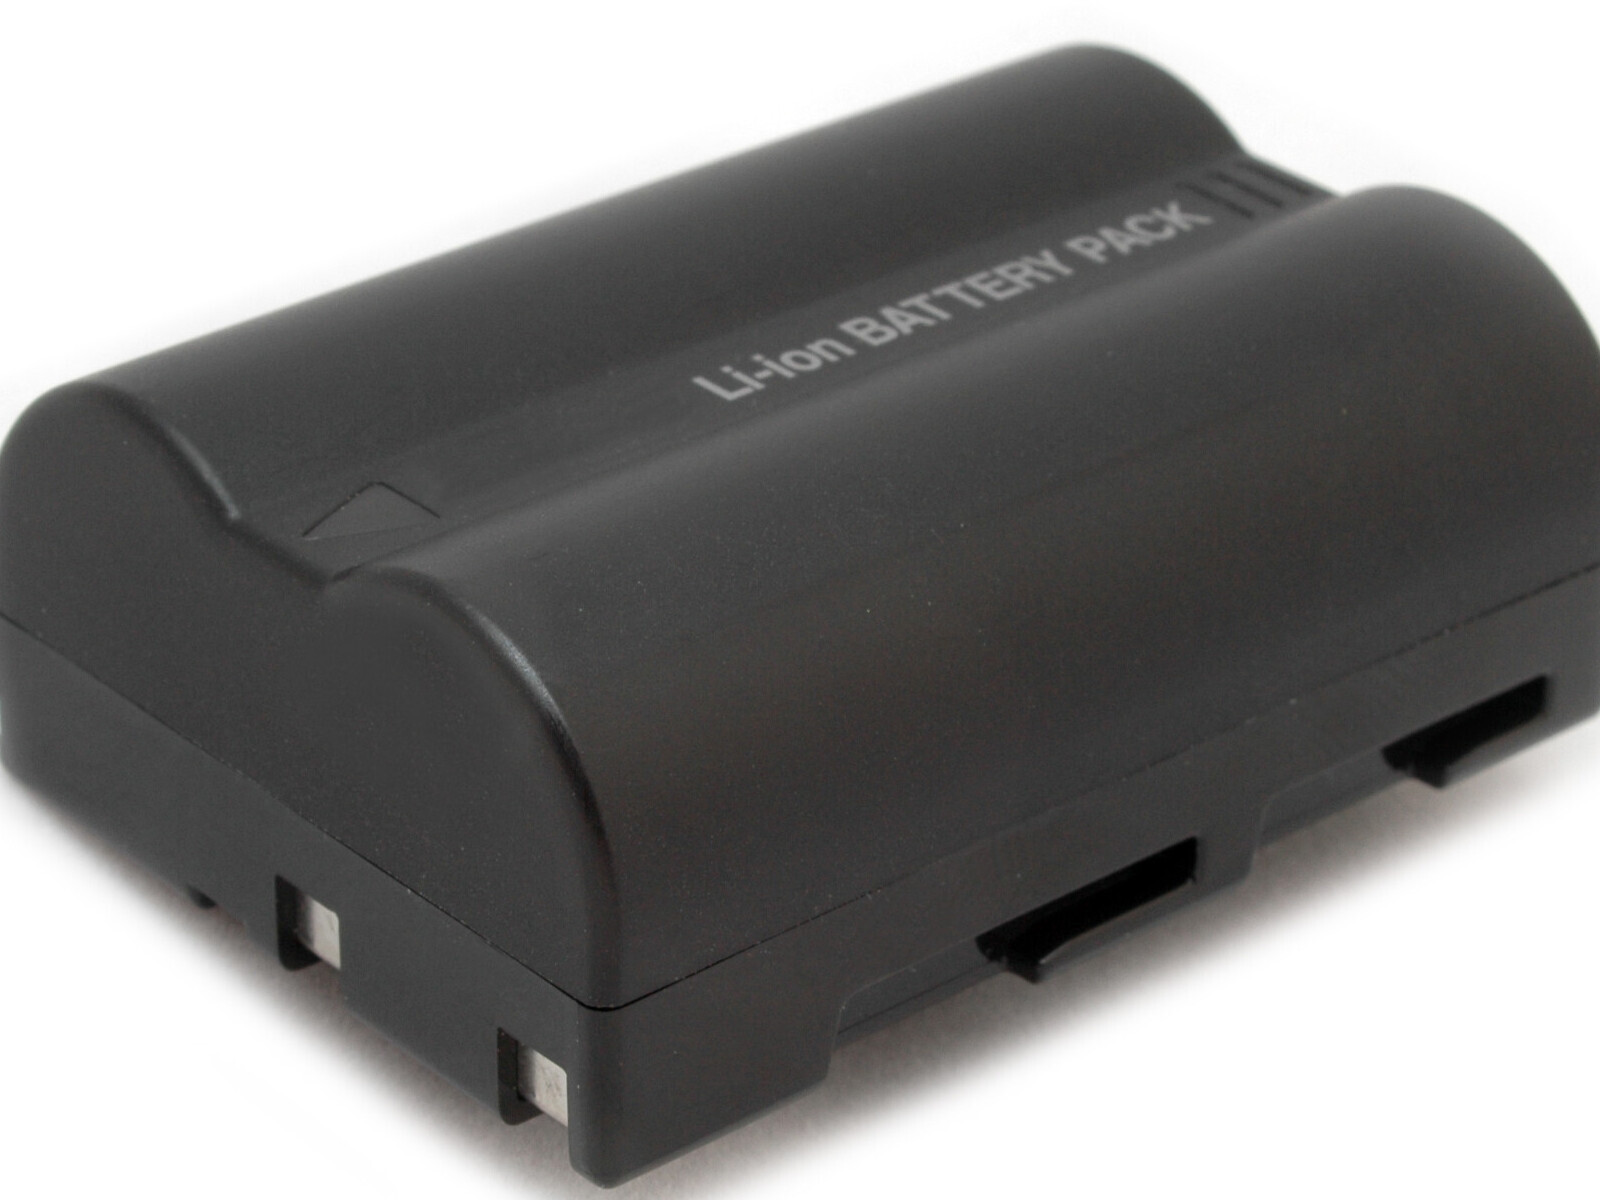 lithium ion battery pack-crop1600x1200.jpg